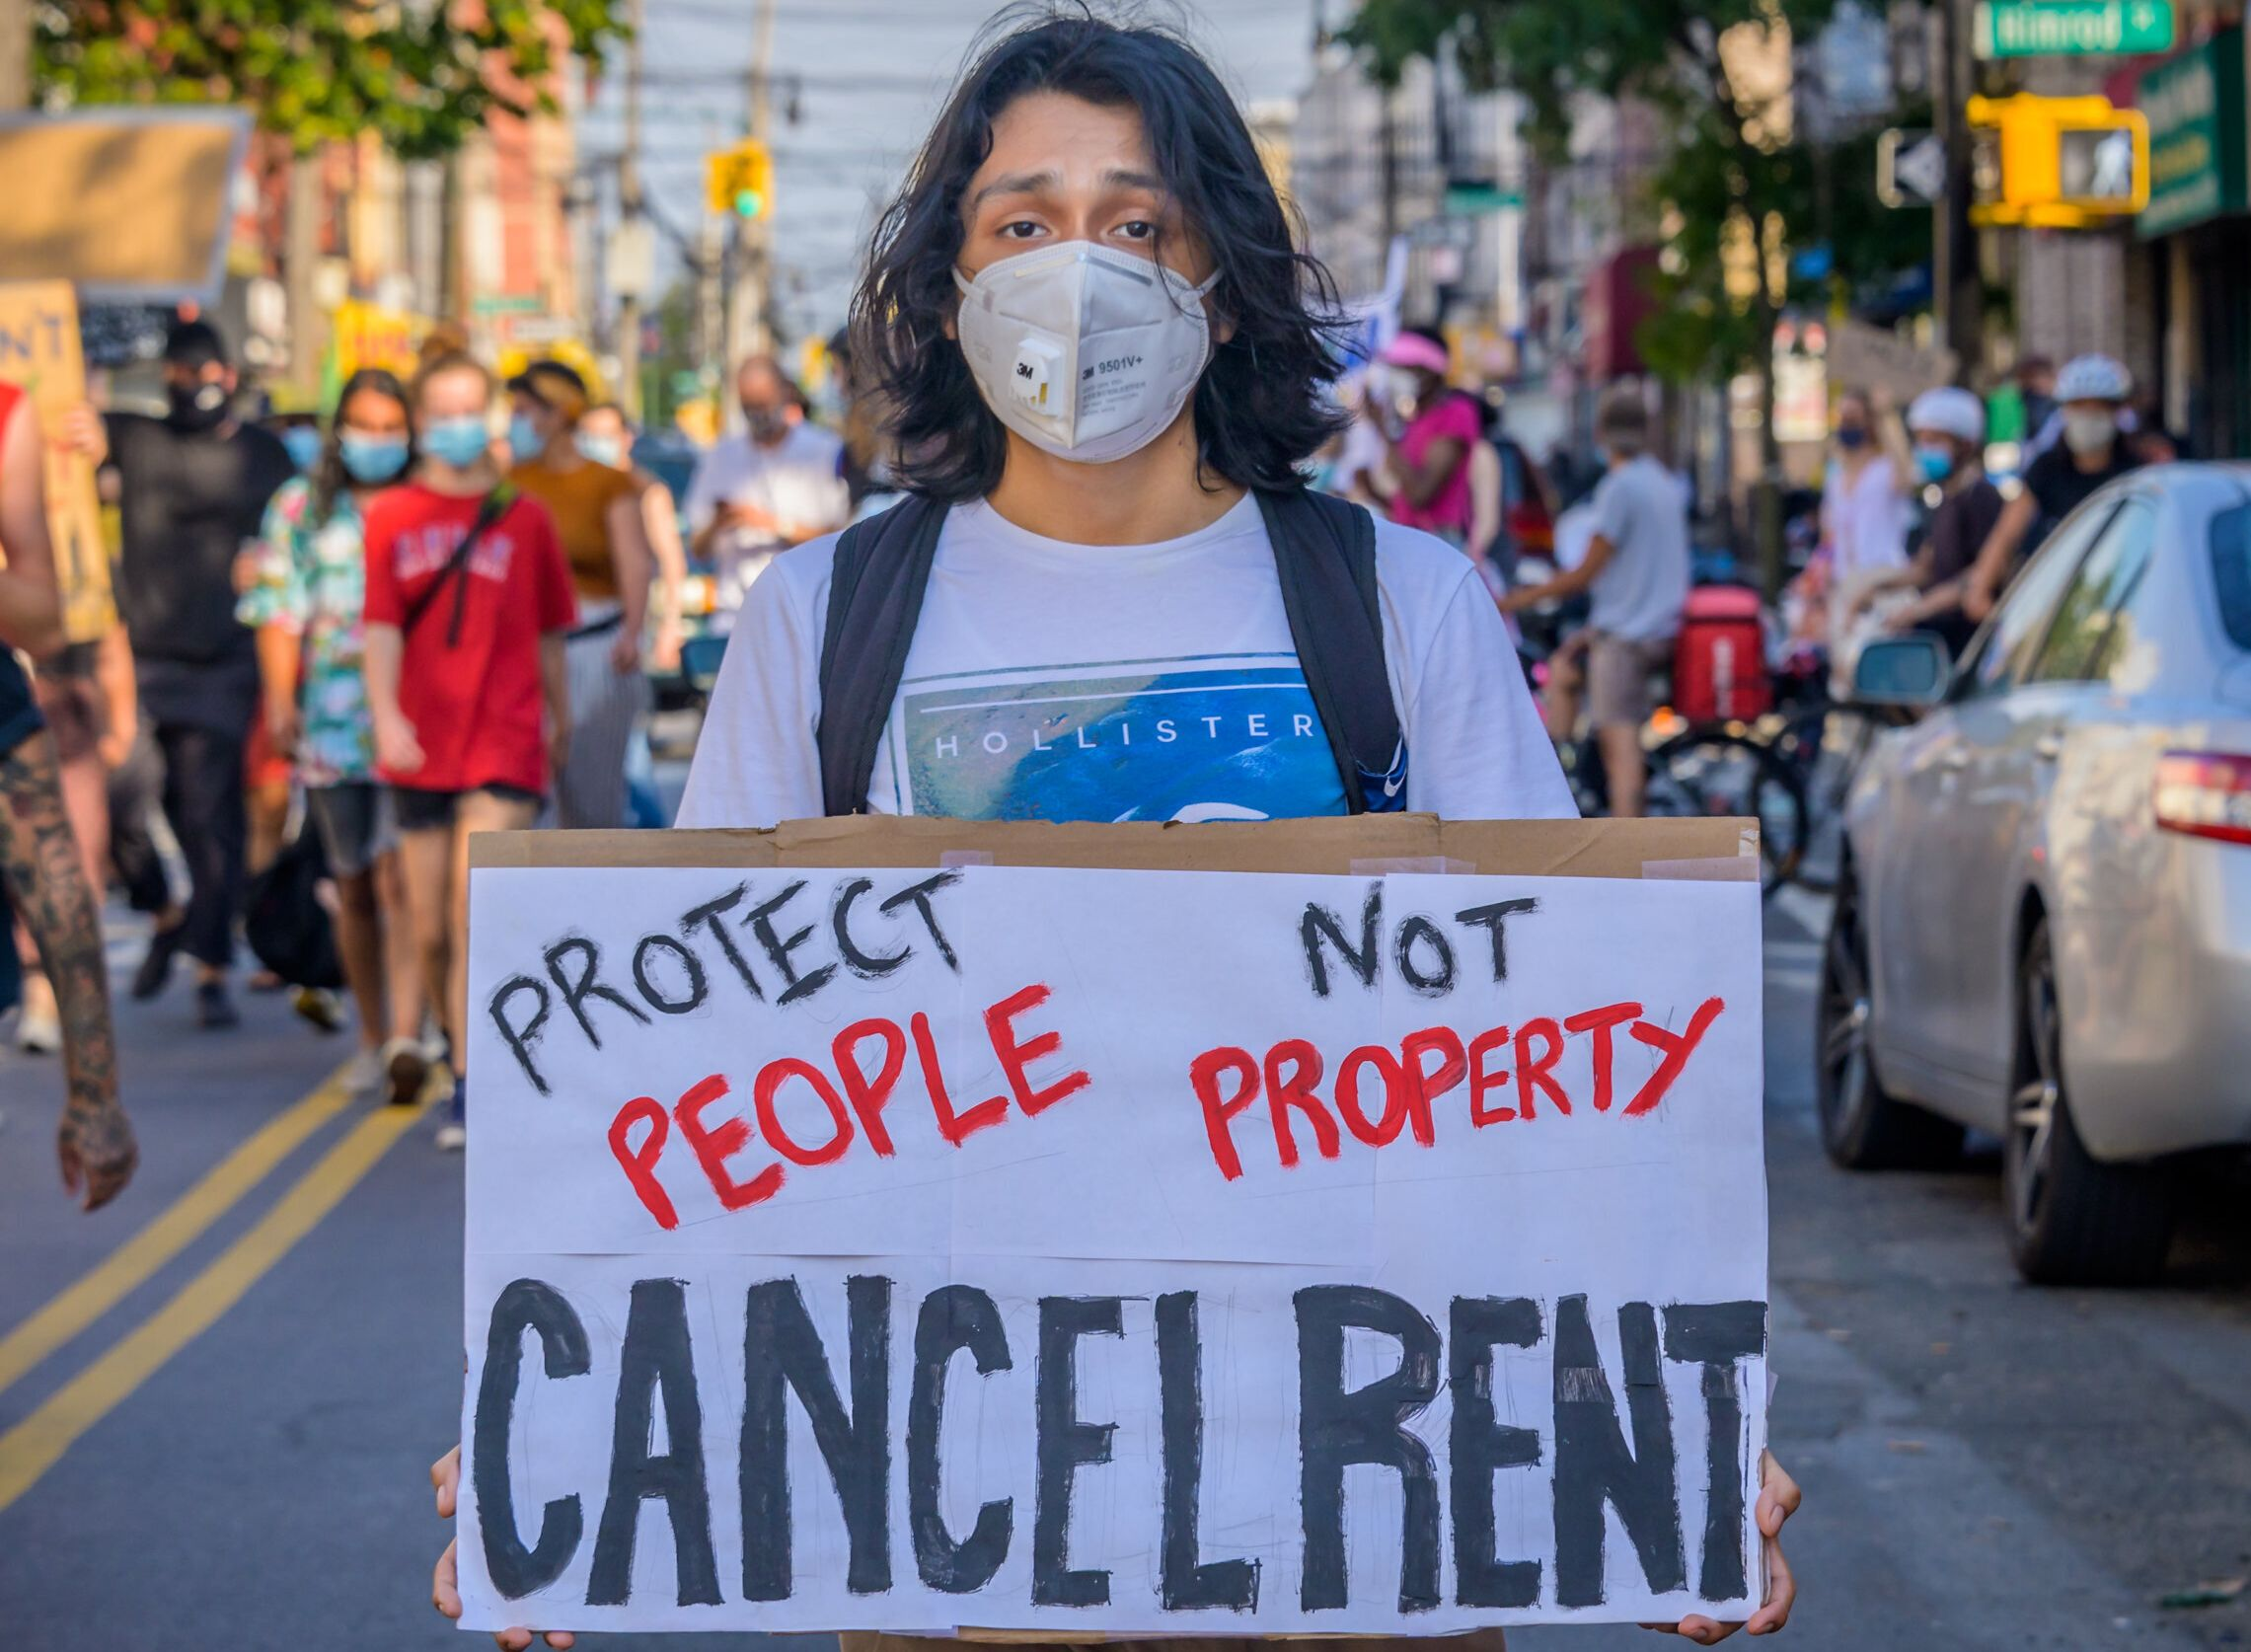 Tenants and housing activists gather for a rally and march in Brooklyn's Bushwick neighborhood, demanding that city administrators cancel rent immediately as the financial situation for many New Yorkers remains dire amid the coronavirus pandemic.